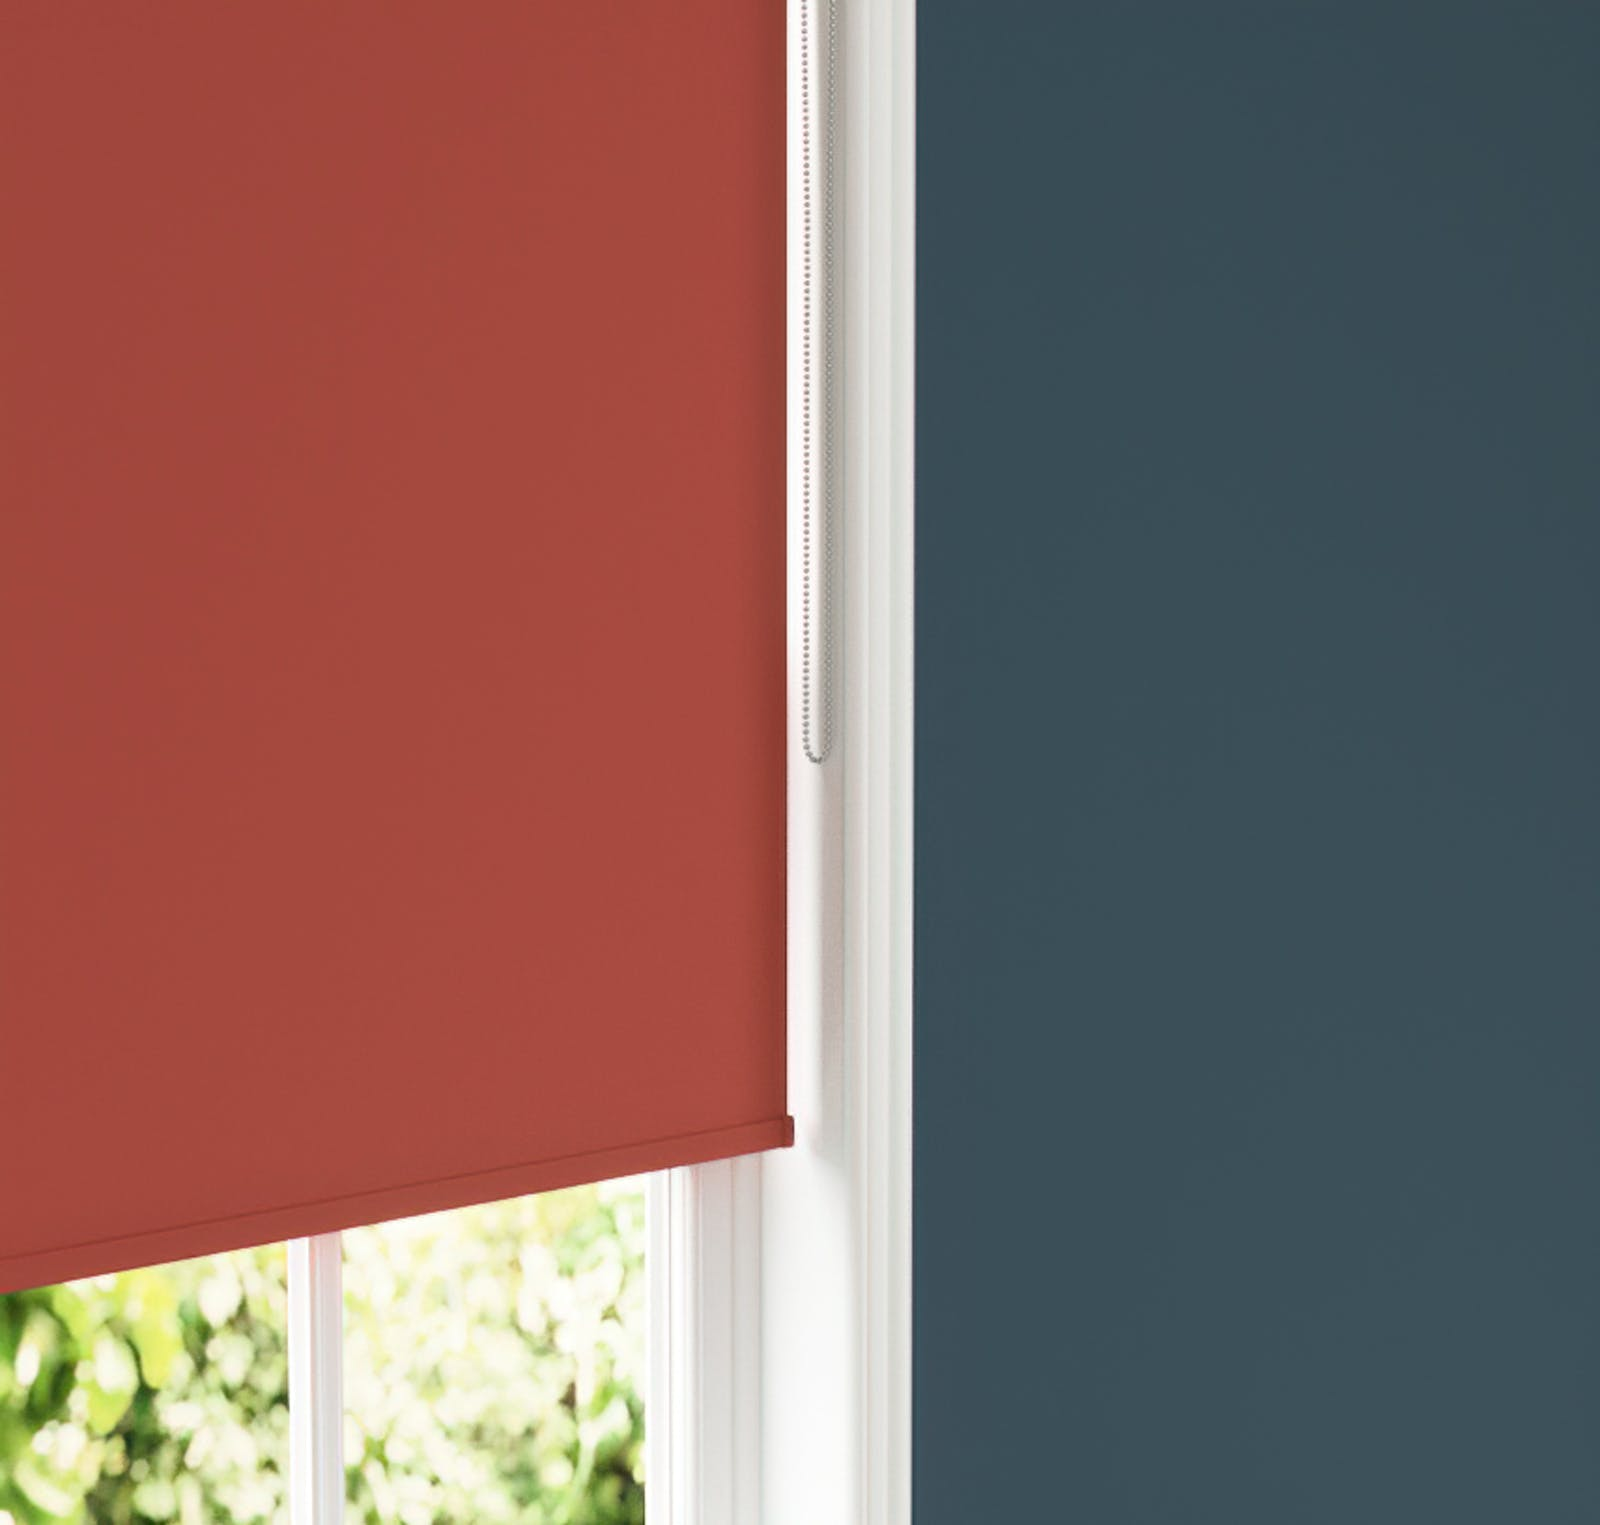 Close up image of Red 02 roller blinds and Blue 07 walls